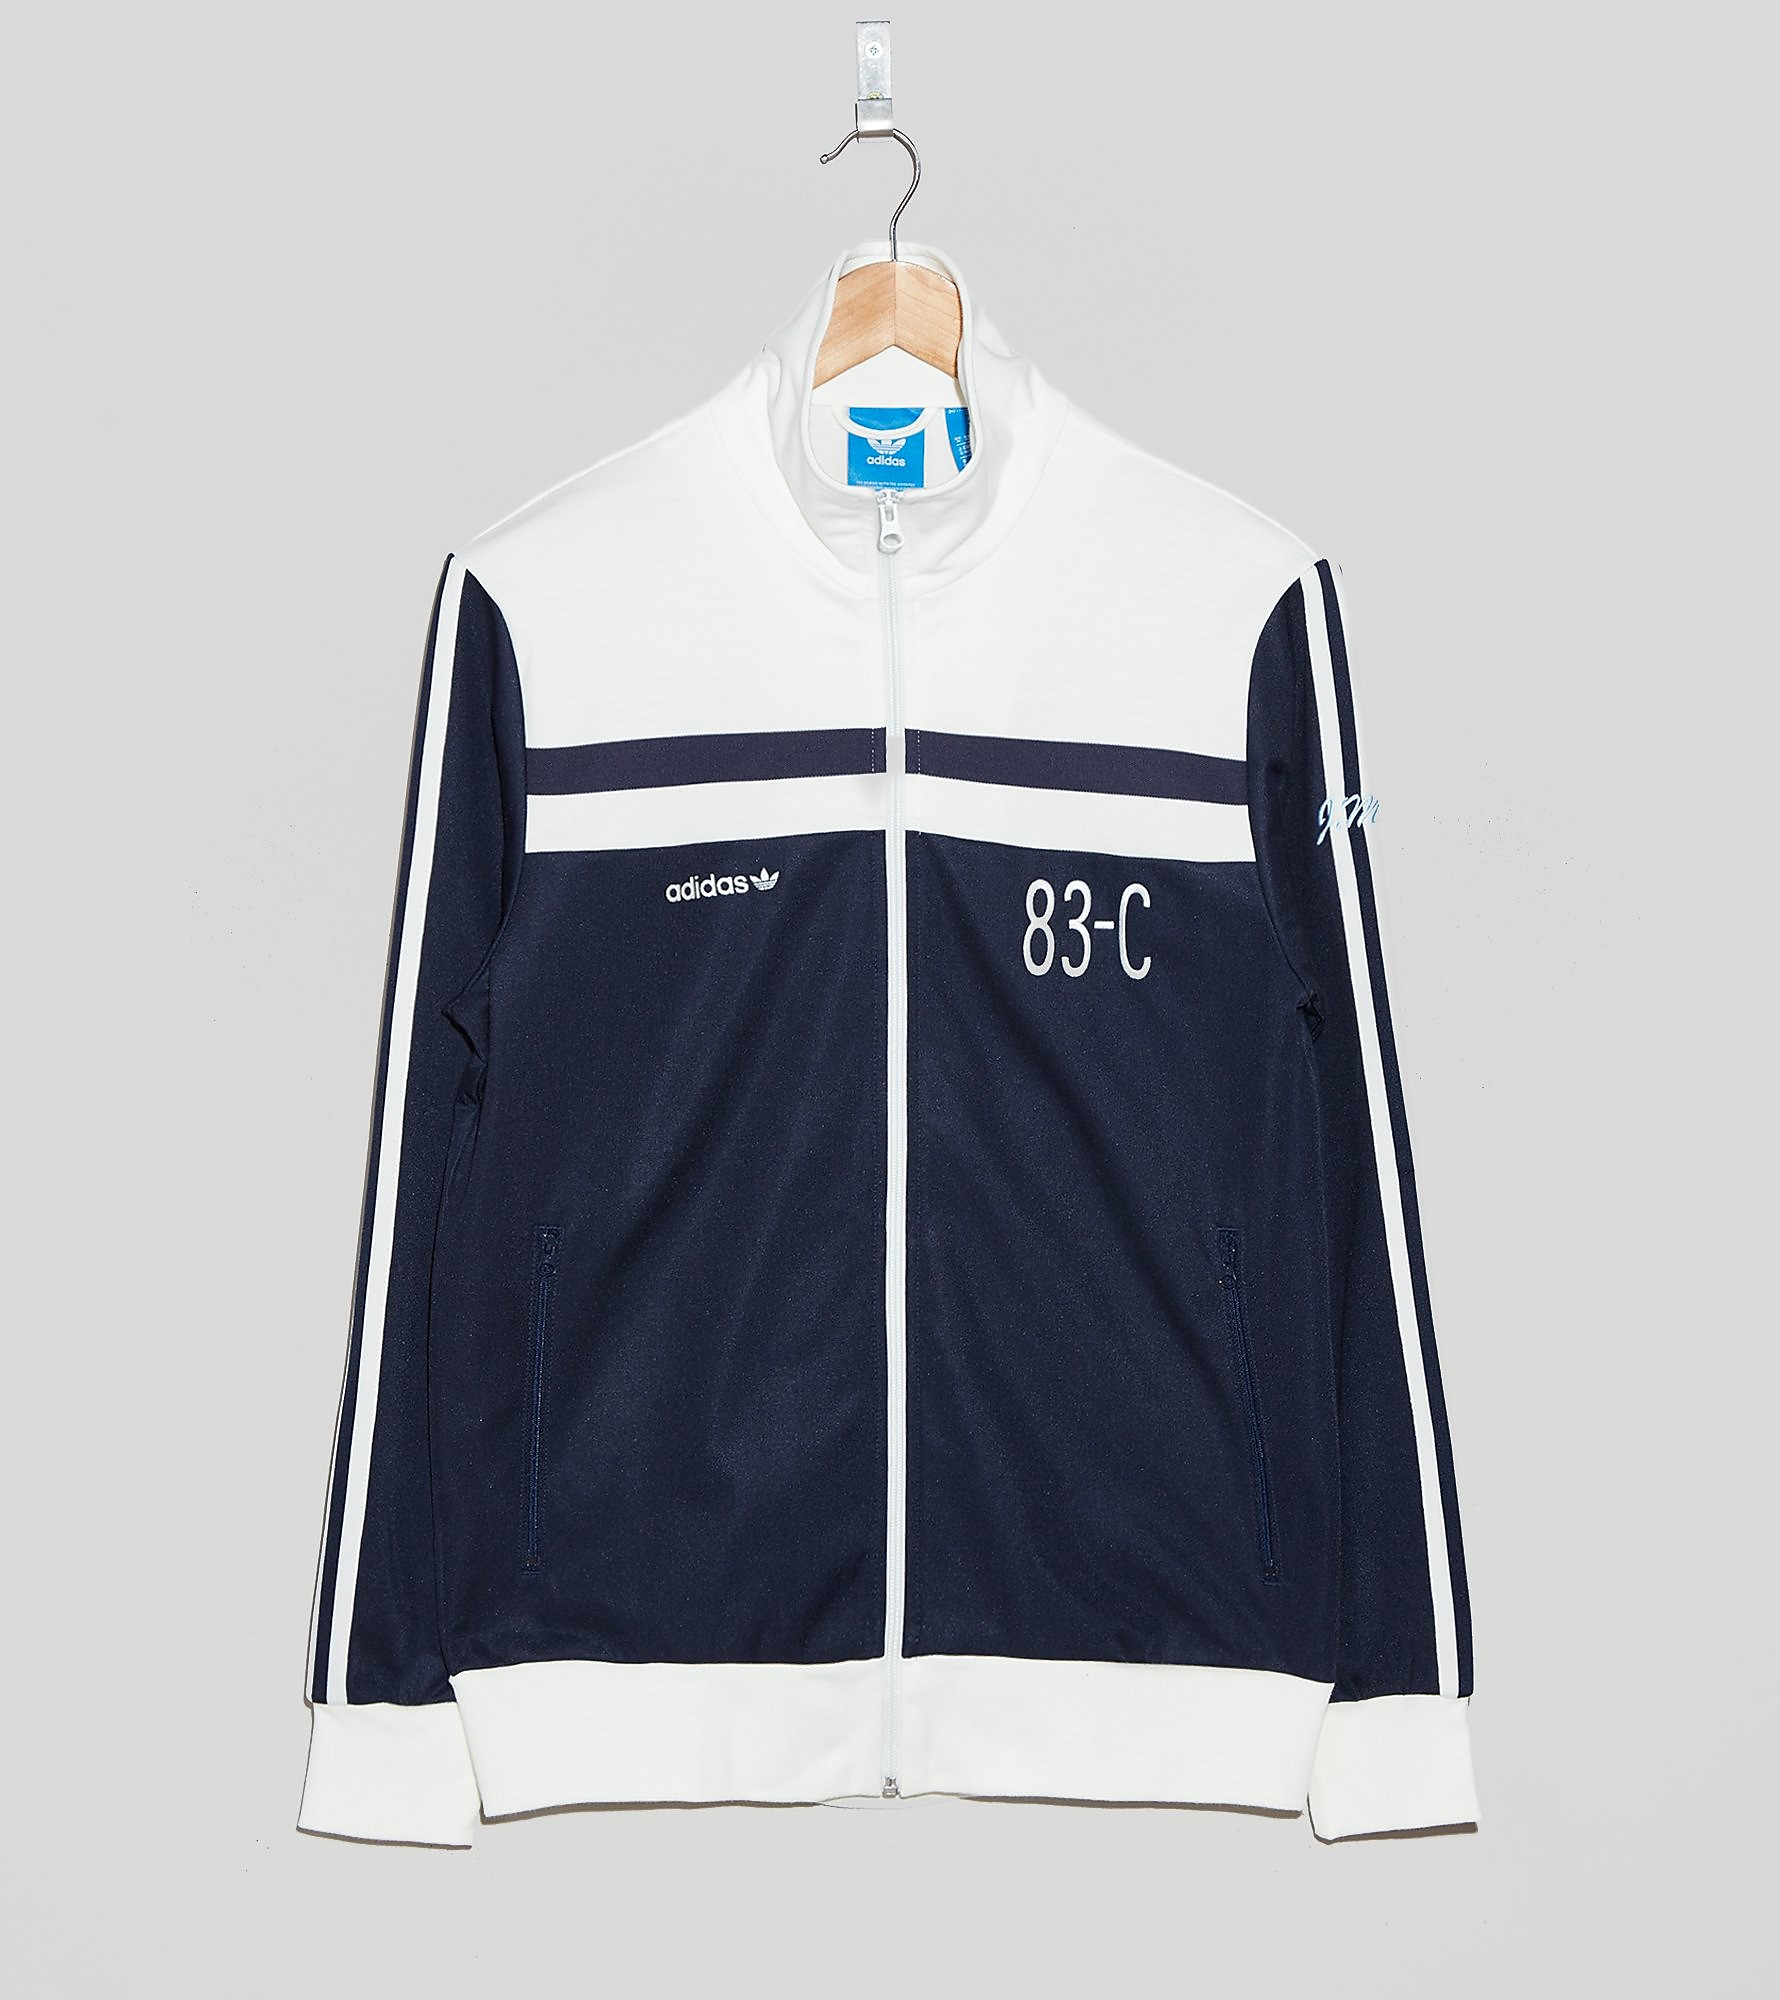 adidas Originals 83-C Track Top